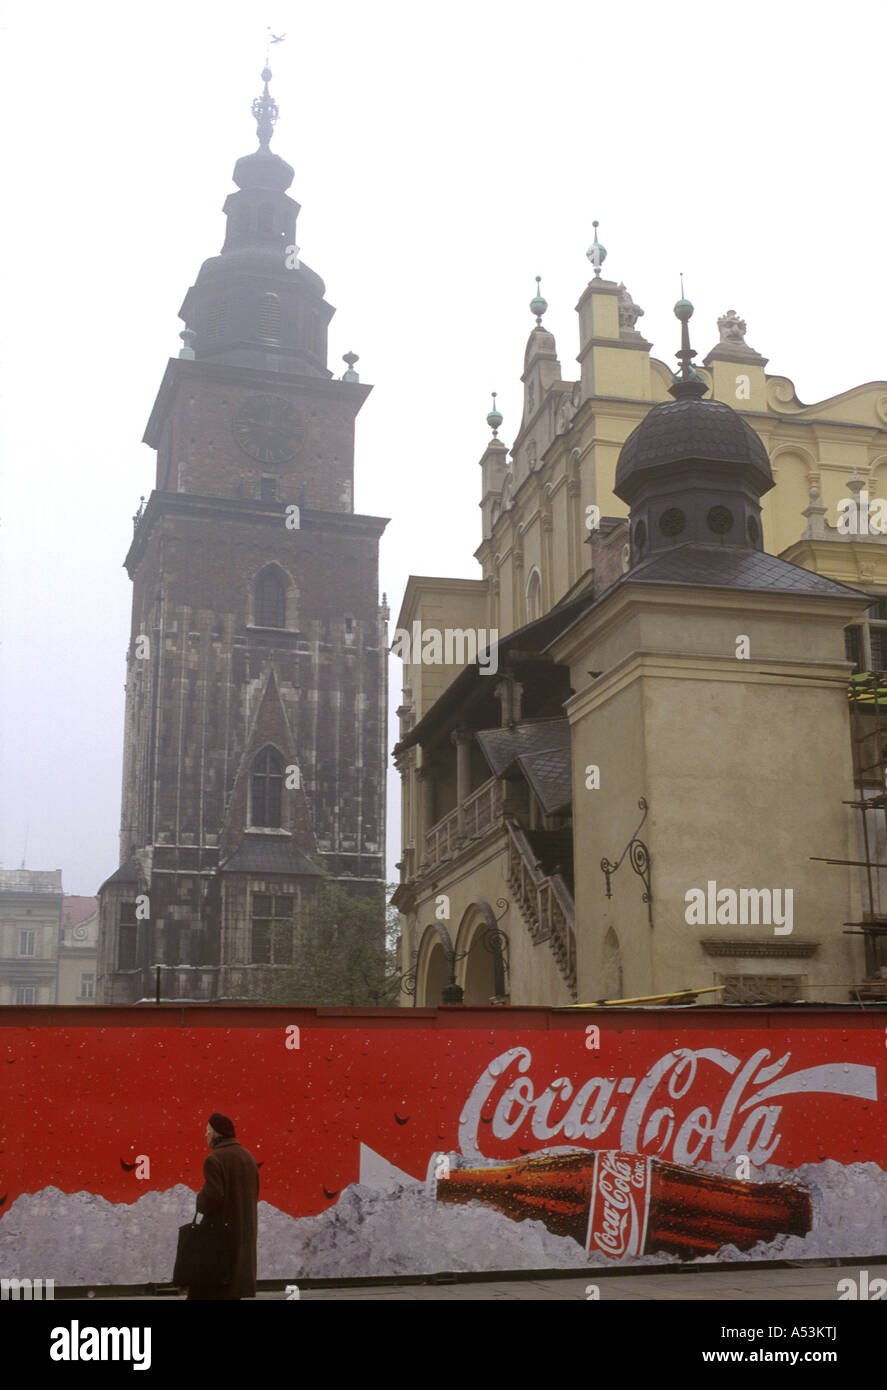 Painet ha1570 3155 poland market square coca cola coca-cola krakow country developing nation less economically developed - Stock Image